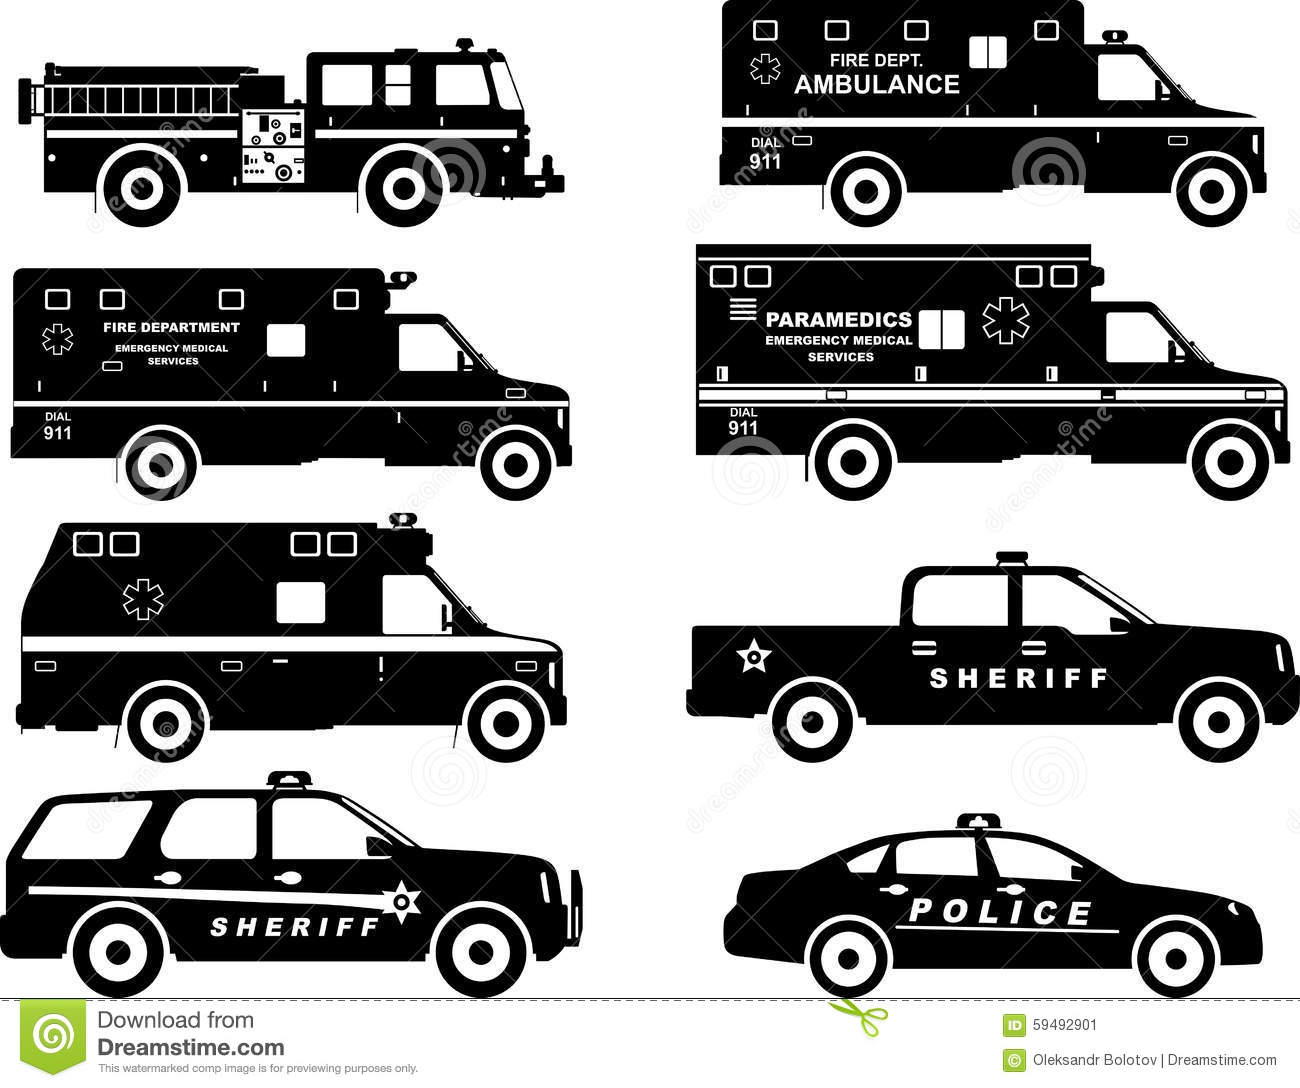 medical helicopter drawing with Ambulance Police Car Fire Truck on 99923685455169366 also Military013 172051 in addition Soldier Man War Black Army 160420 likewise Las Vegas Nv 2 Officers Hurt In Vegas Police Helicopter Crash in addition Hospital Building Illustration.